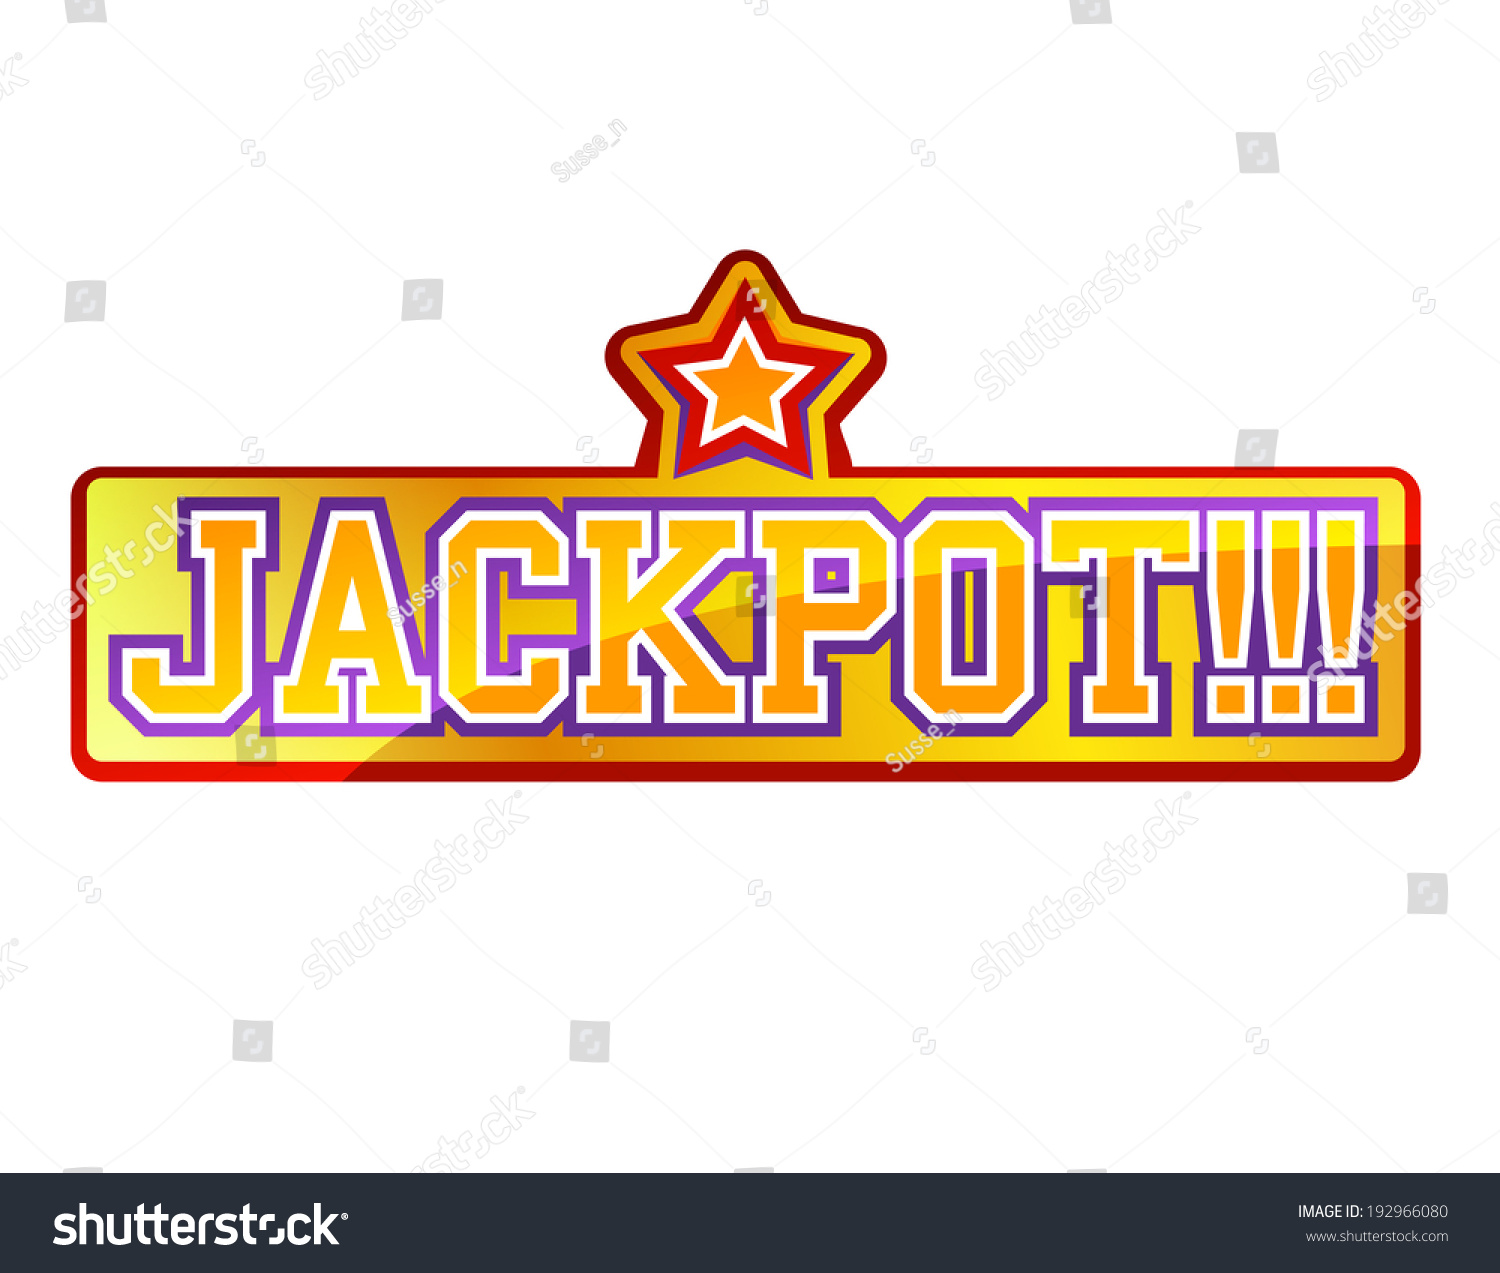 Related Keywords & Suggestions for jackpot sign